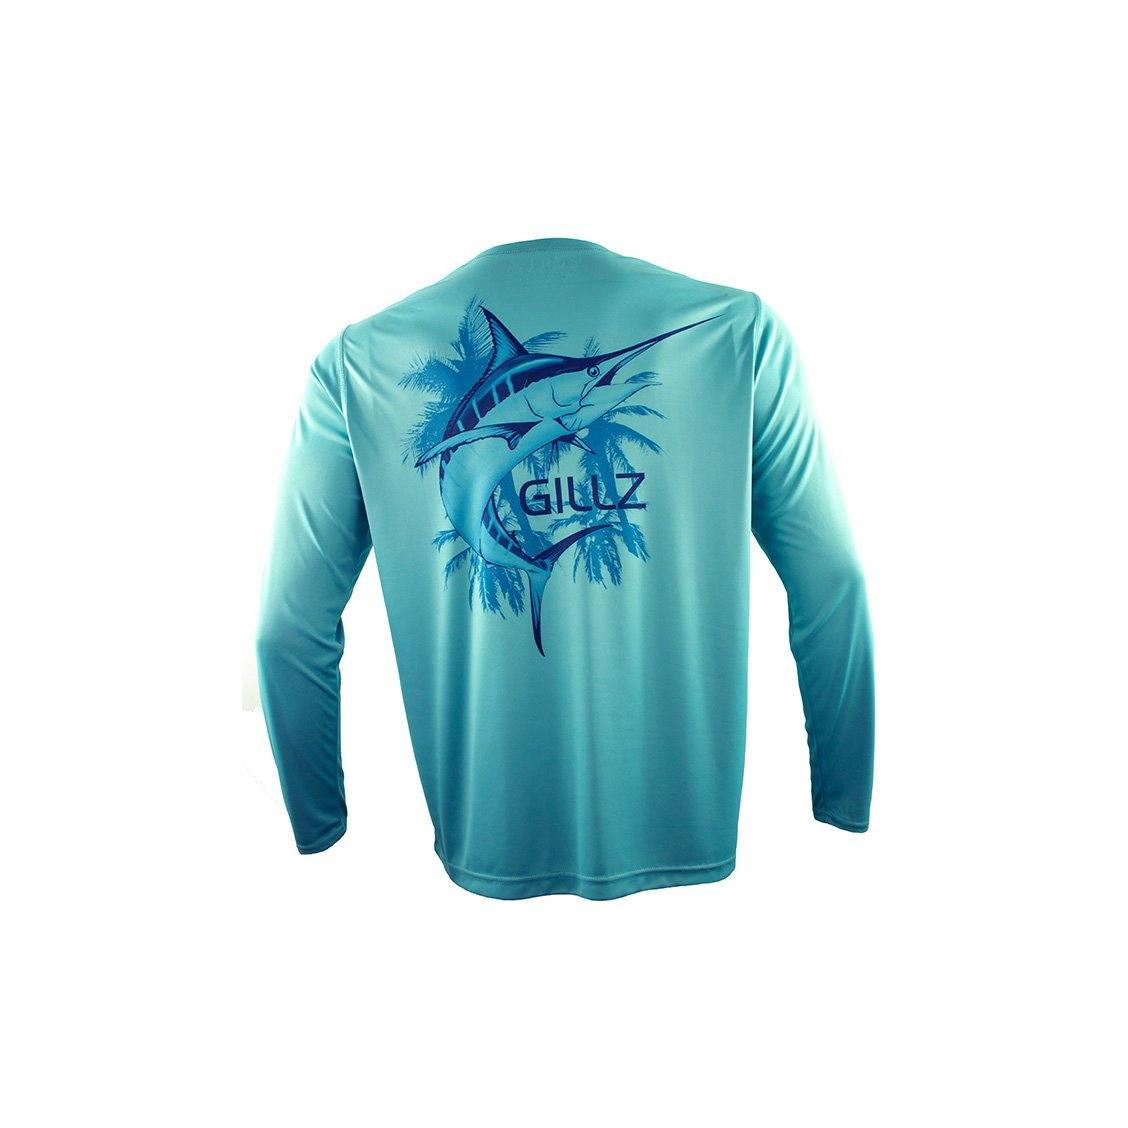 "Gillz Men's Long Sleeve UV ""True Florida Marlin"" - Meadowbrook"